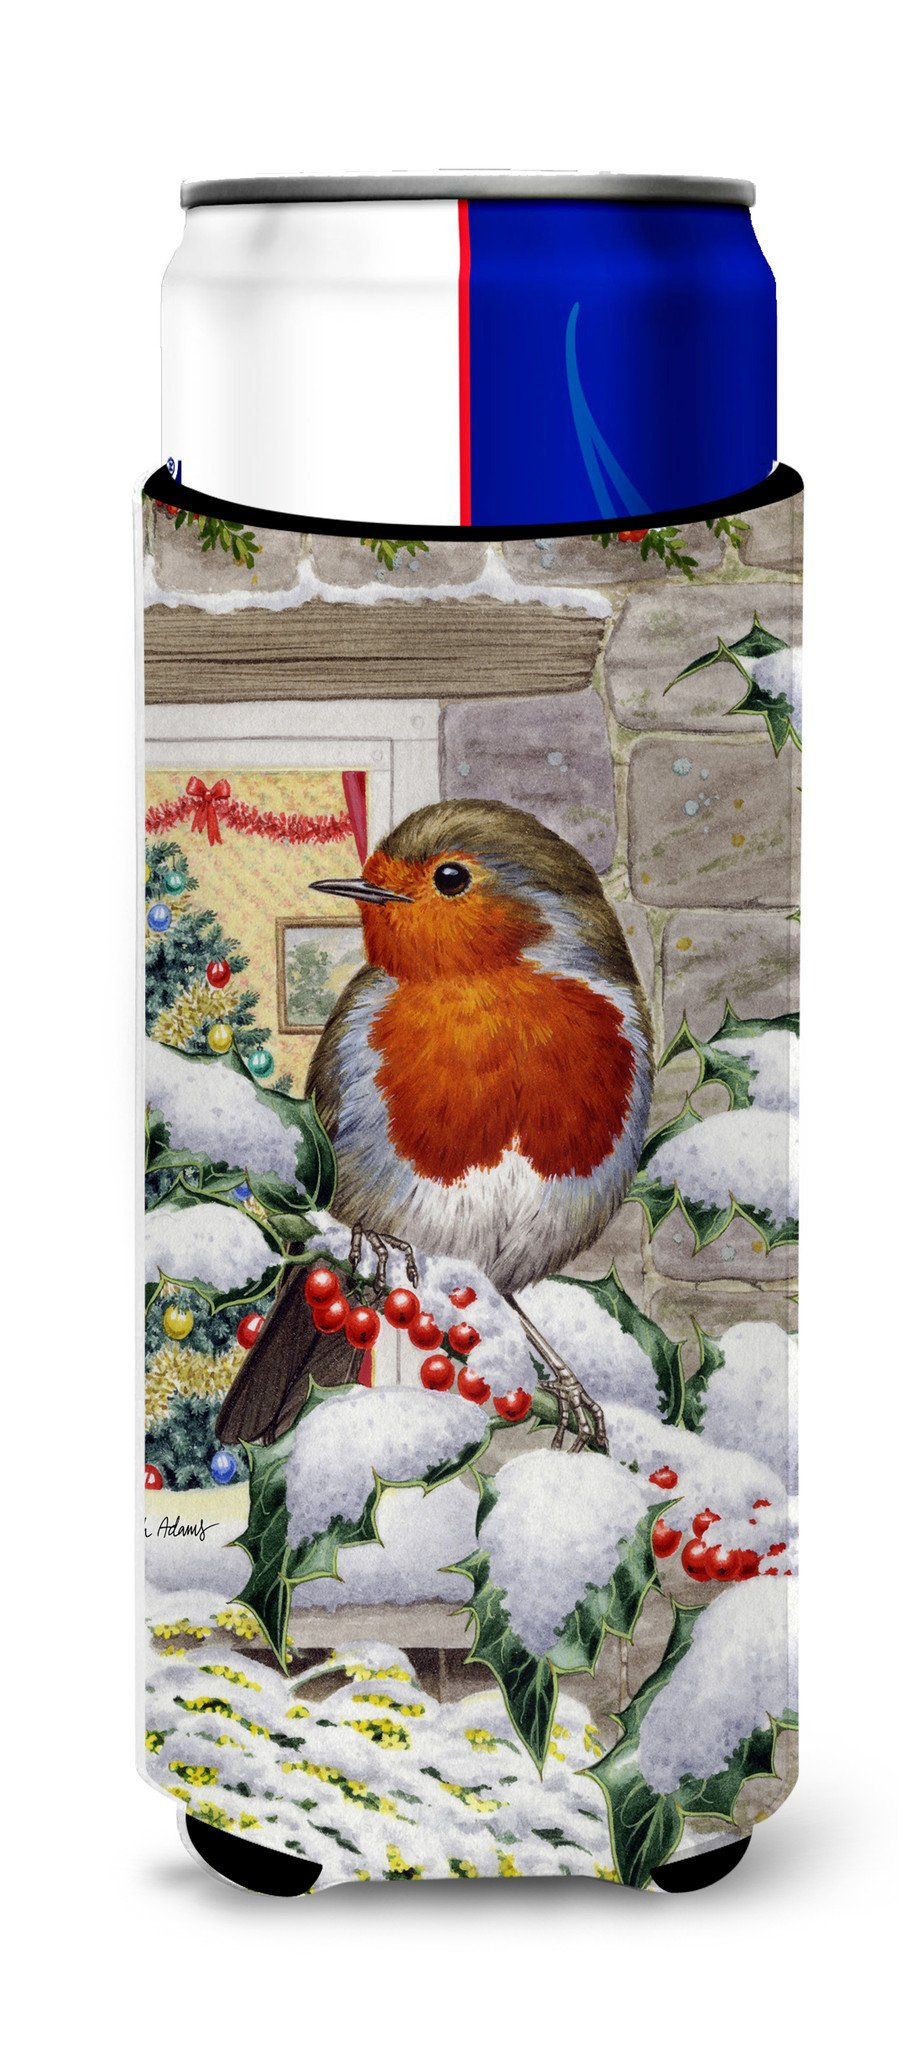 European Robin at the Window Ultra Beverage Insulators for slim cans ASA2089MUK by Caroline's Treasures